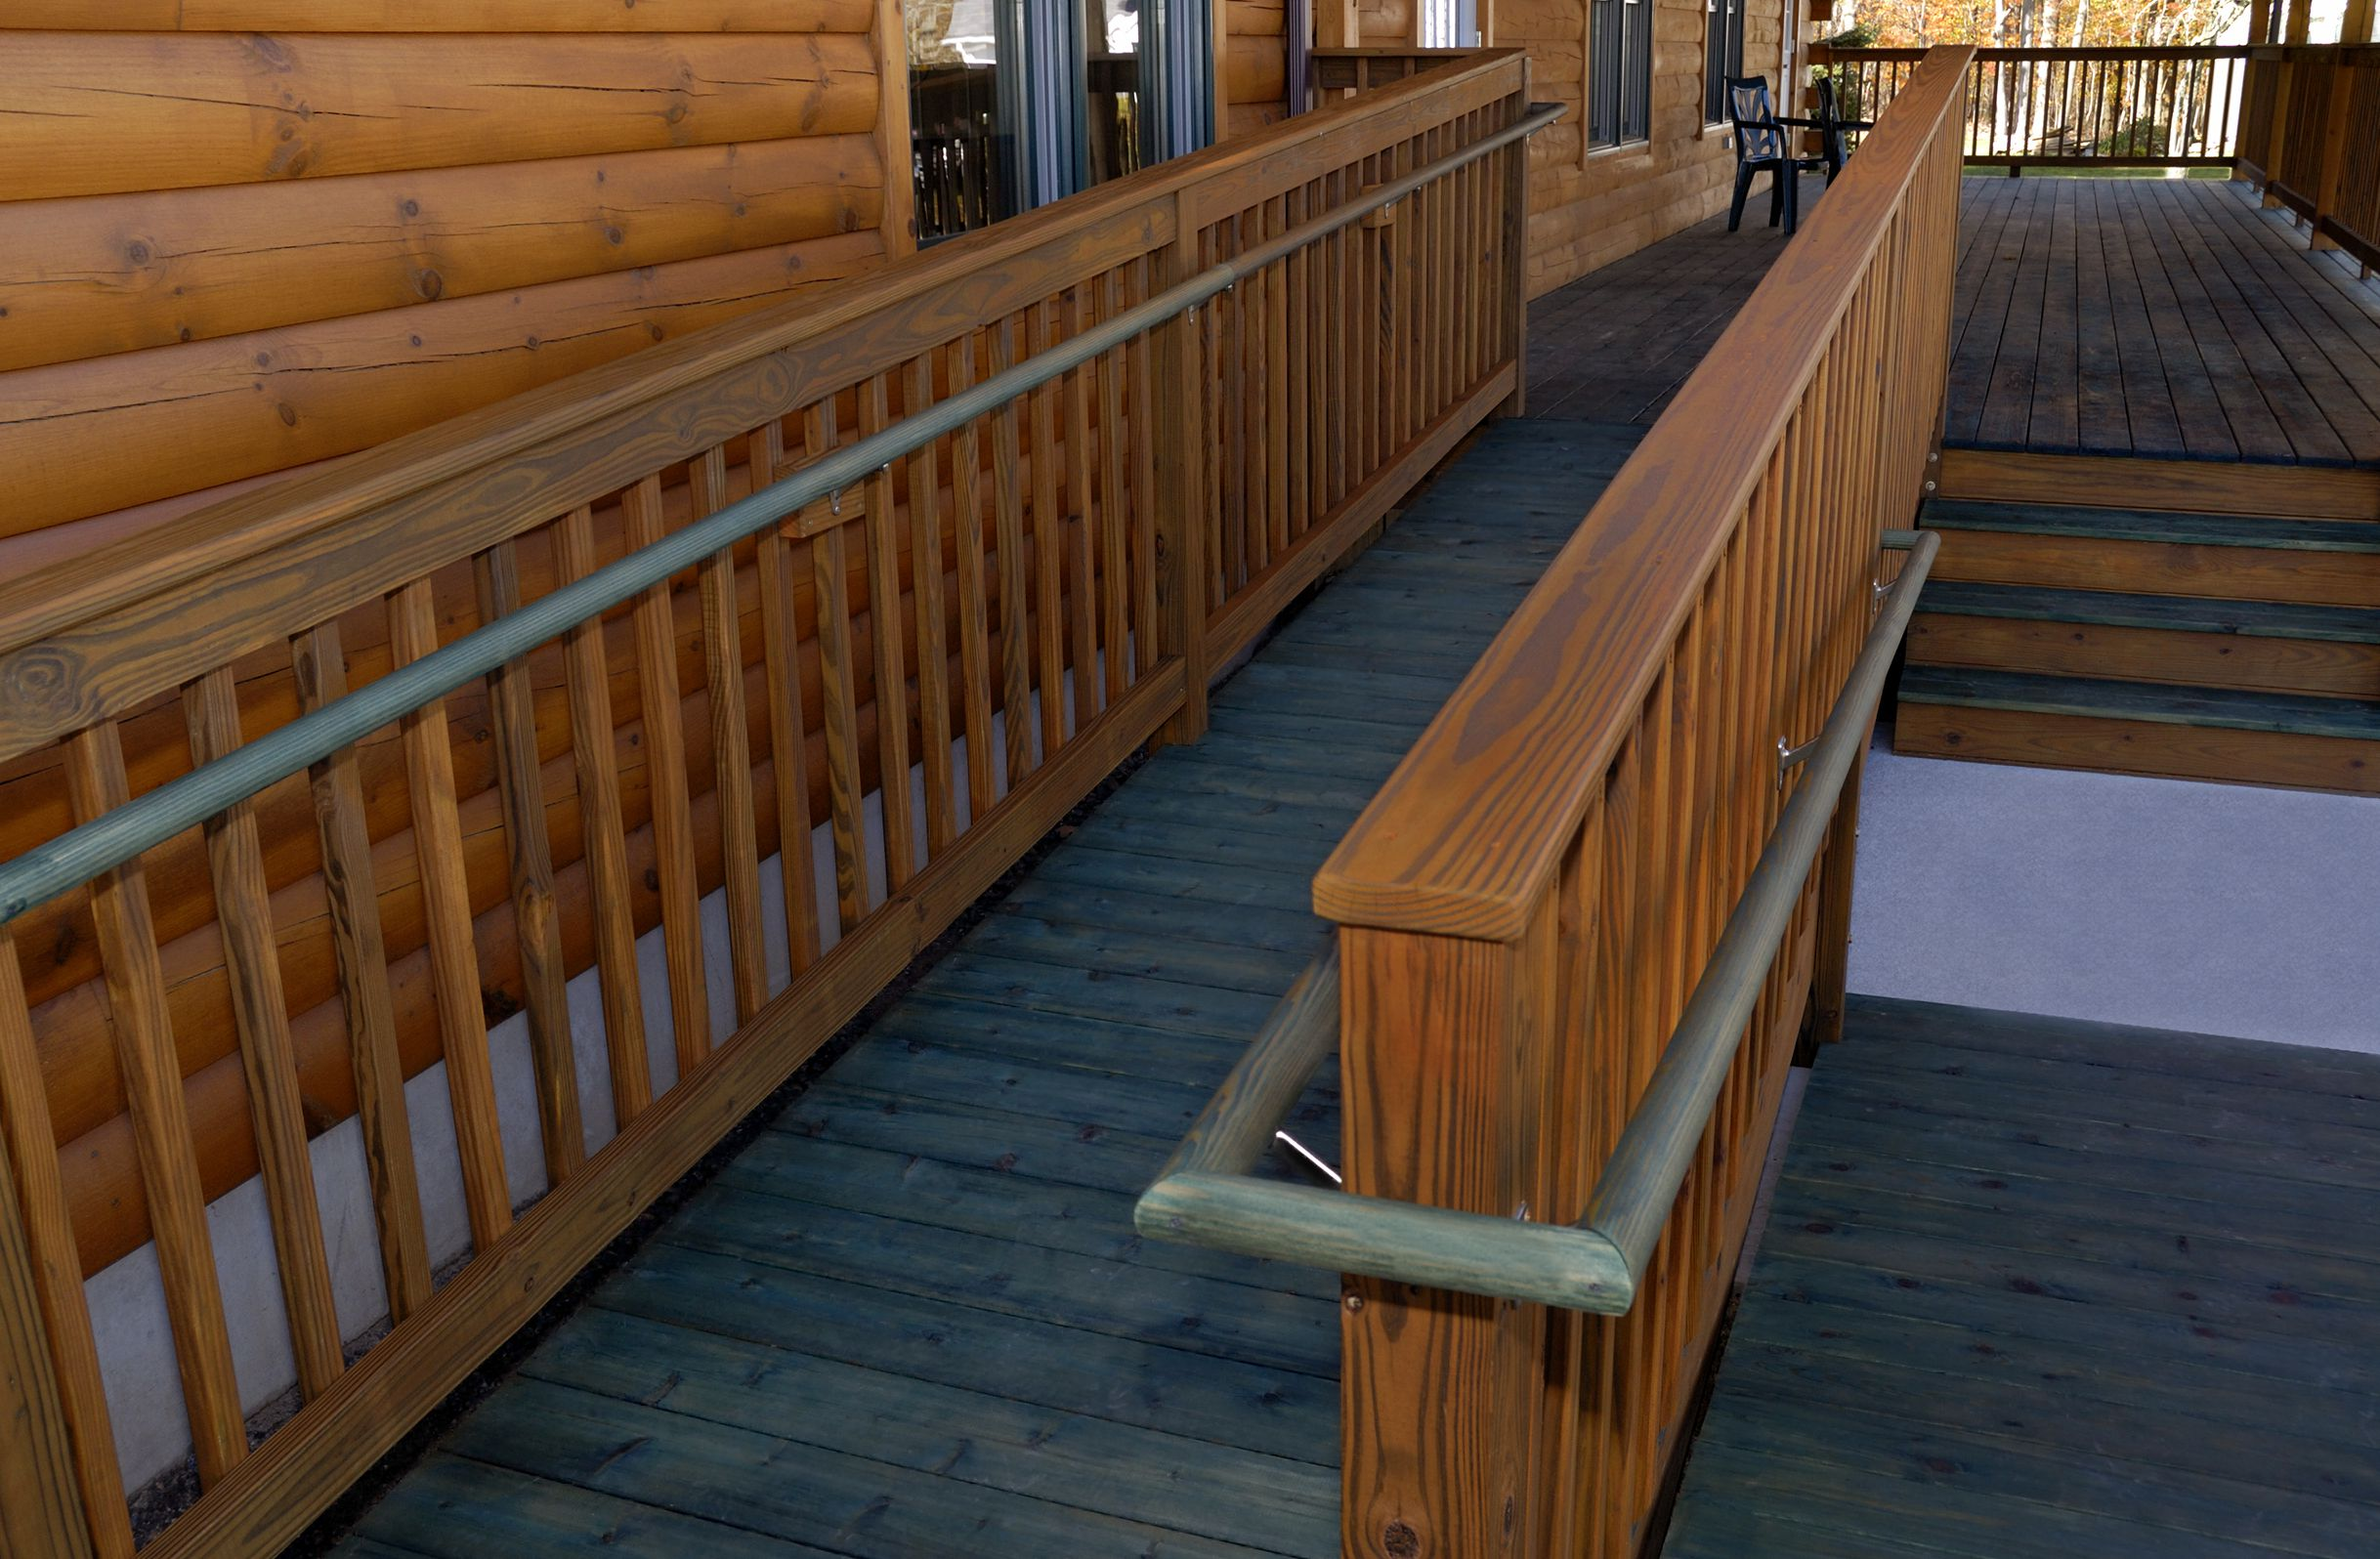 Wheelchair Ramp Kits in Overland Park, KS - Service Noodle